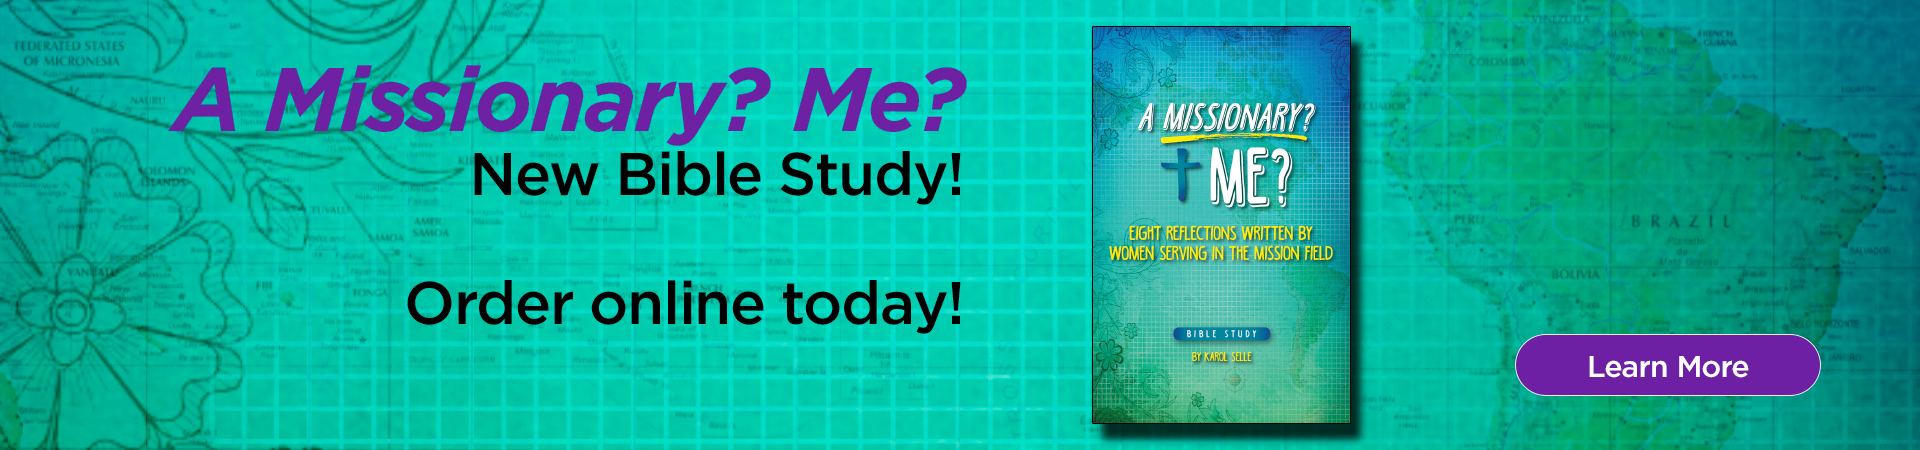 New Bible Study: A Missionary? Me? Order online now or purchase at convention. Learn more.